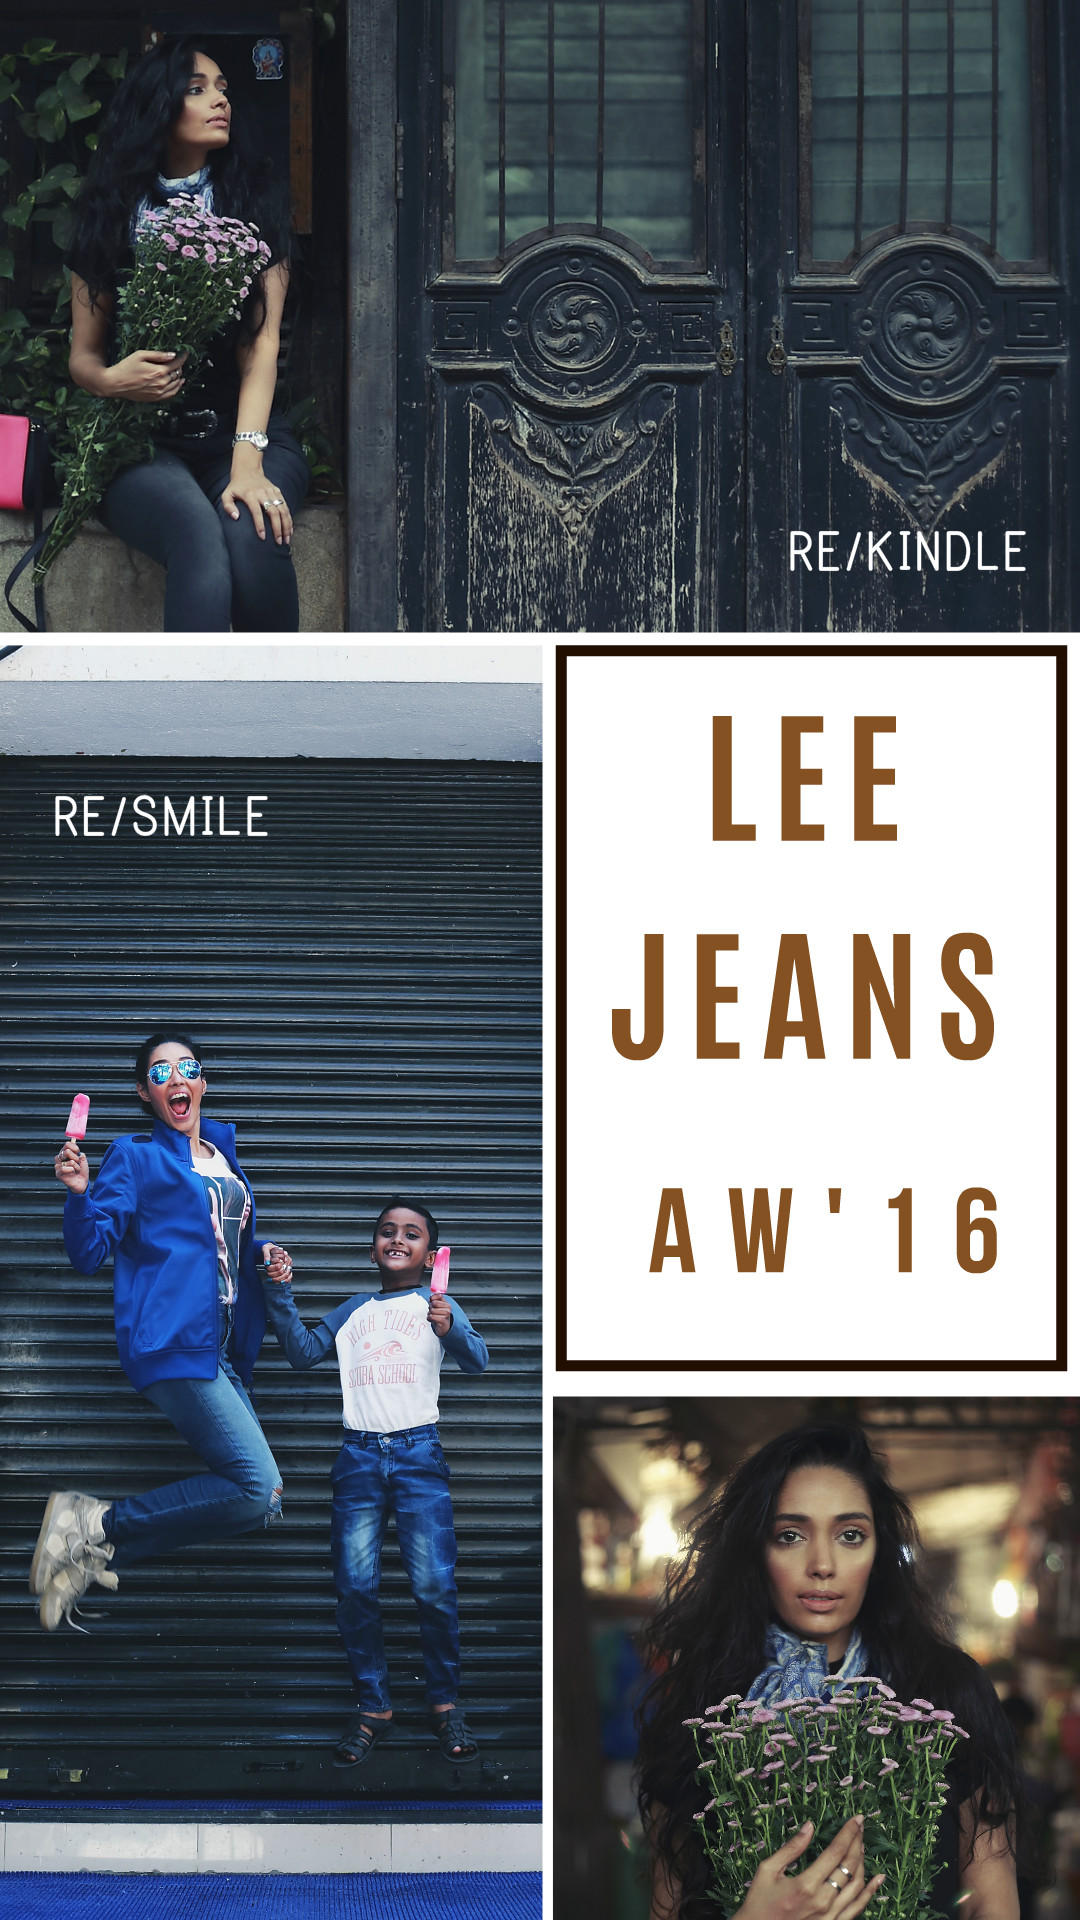 Lee Jeans AW16